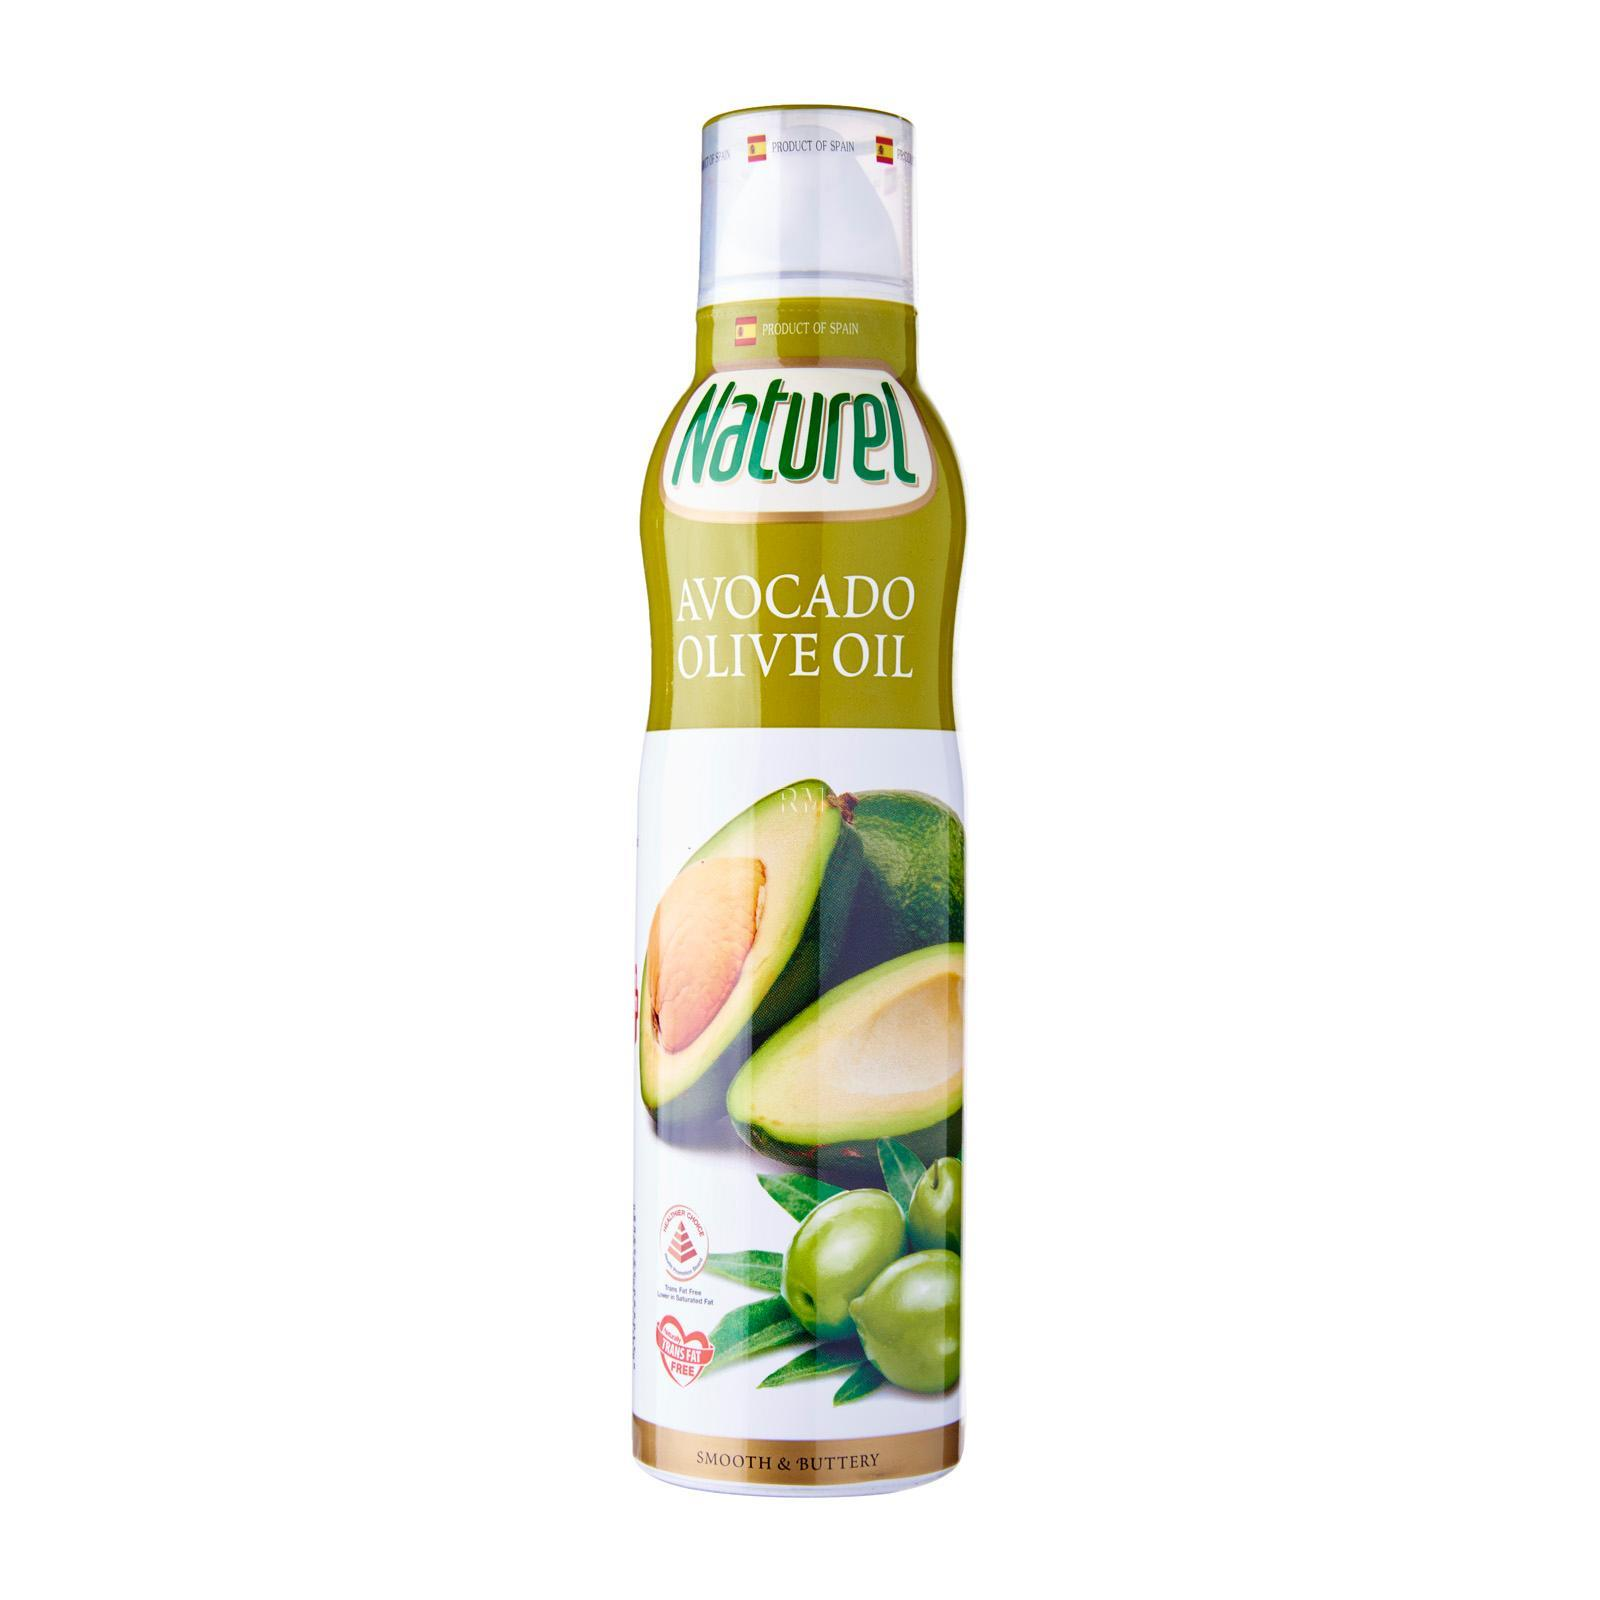 Naturel Avocado Spray 200 Ml Olive Oil